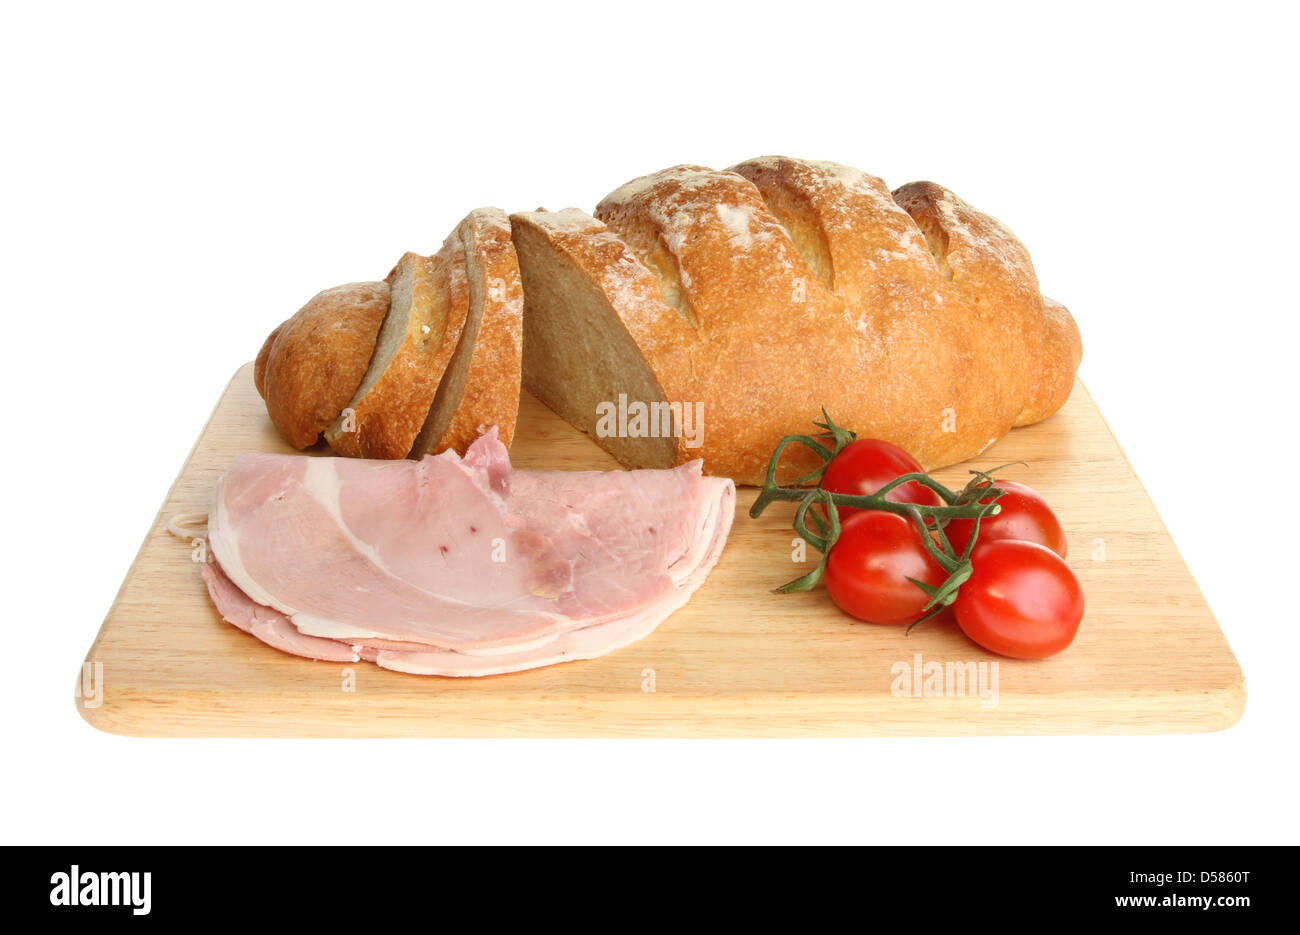 Freshly baked bloomer loaf with ham and tomatoes on a wooden board isolated against white - Stock Image